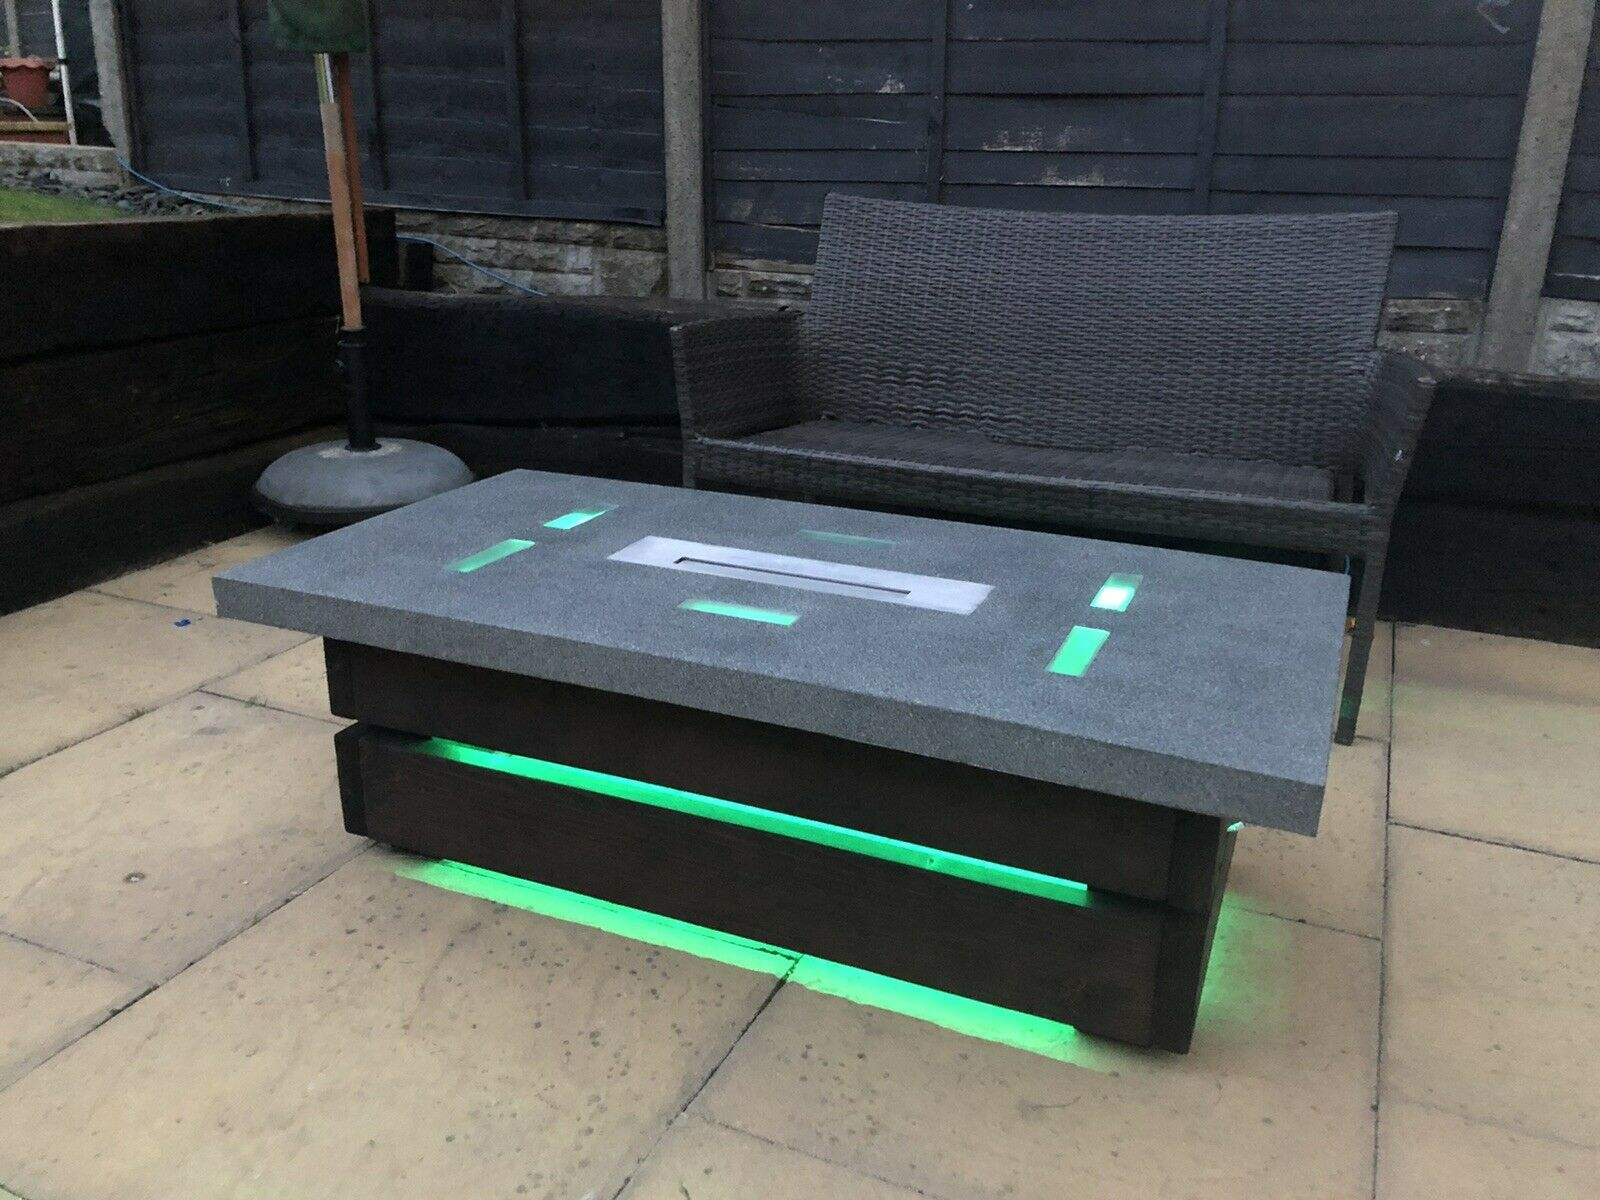 Bio ethanol fire pit table, Concrete Top, Wooden Base, Inter-grated LED Lights